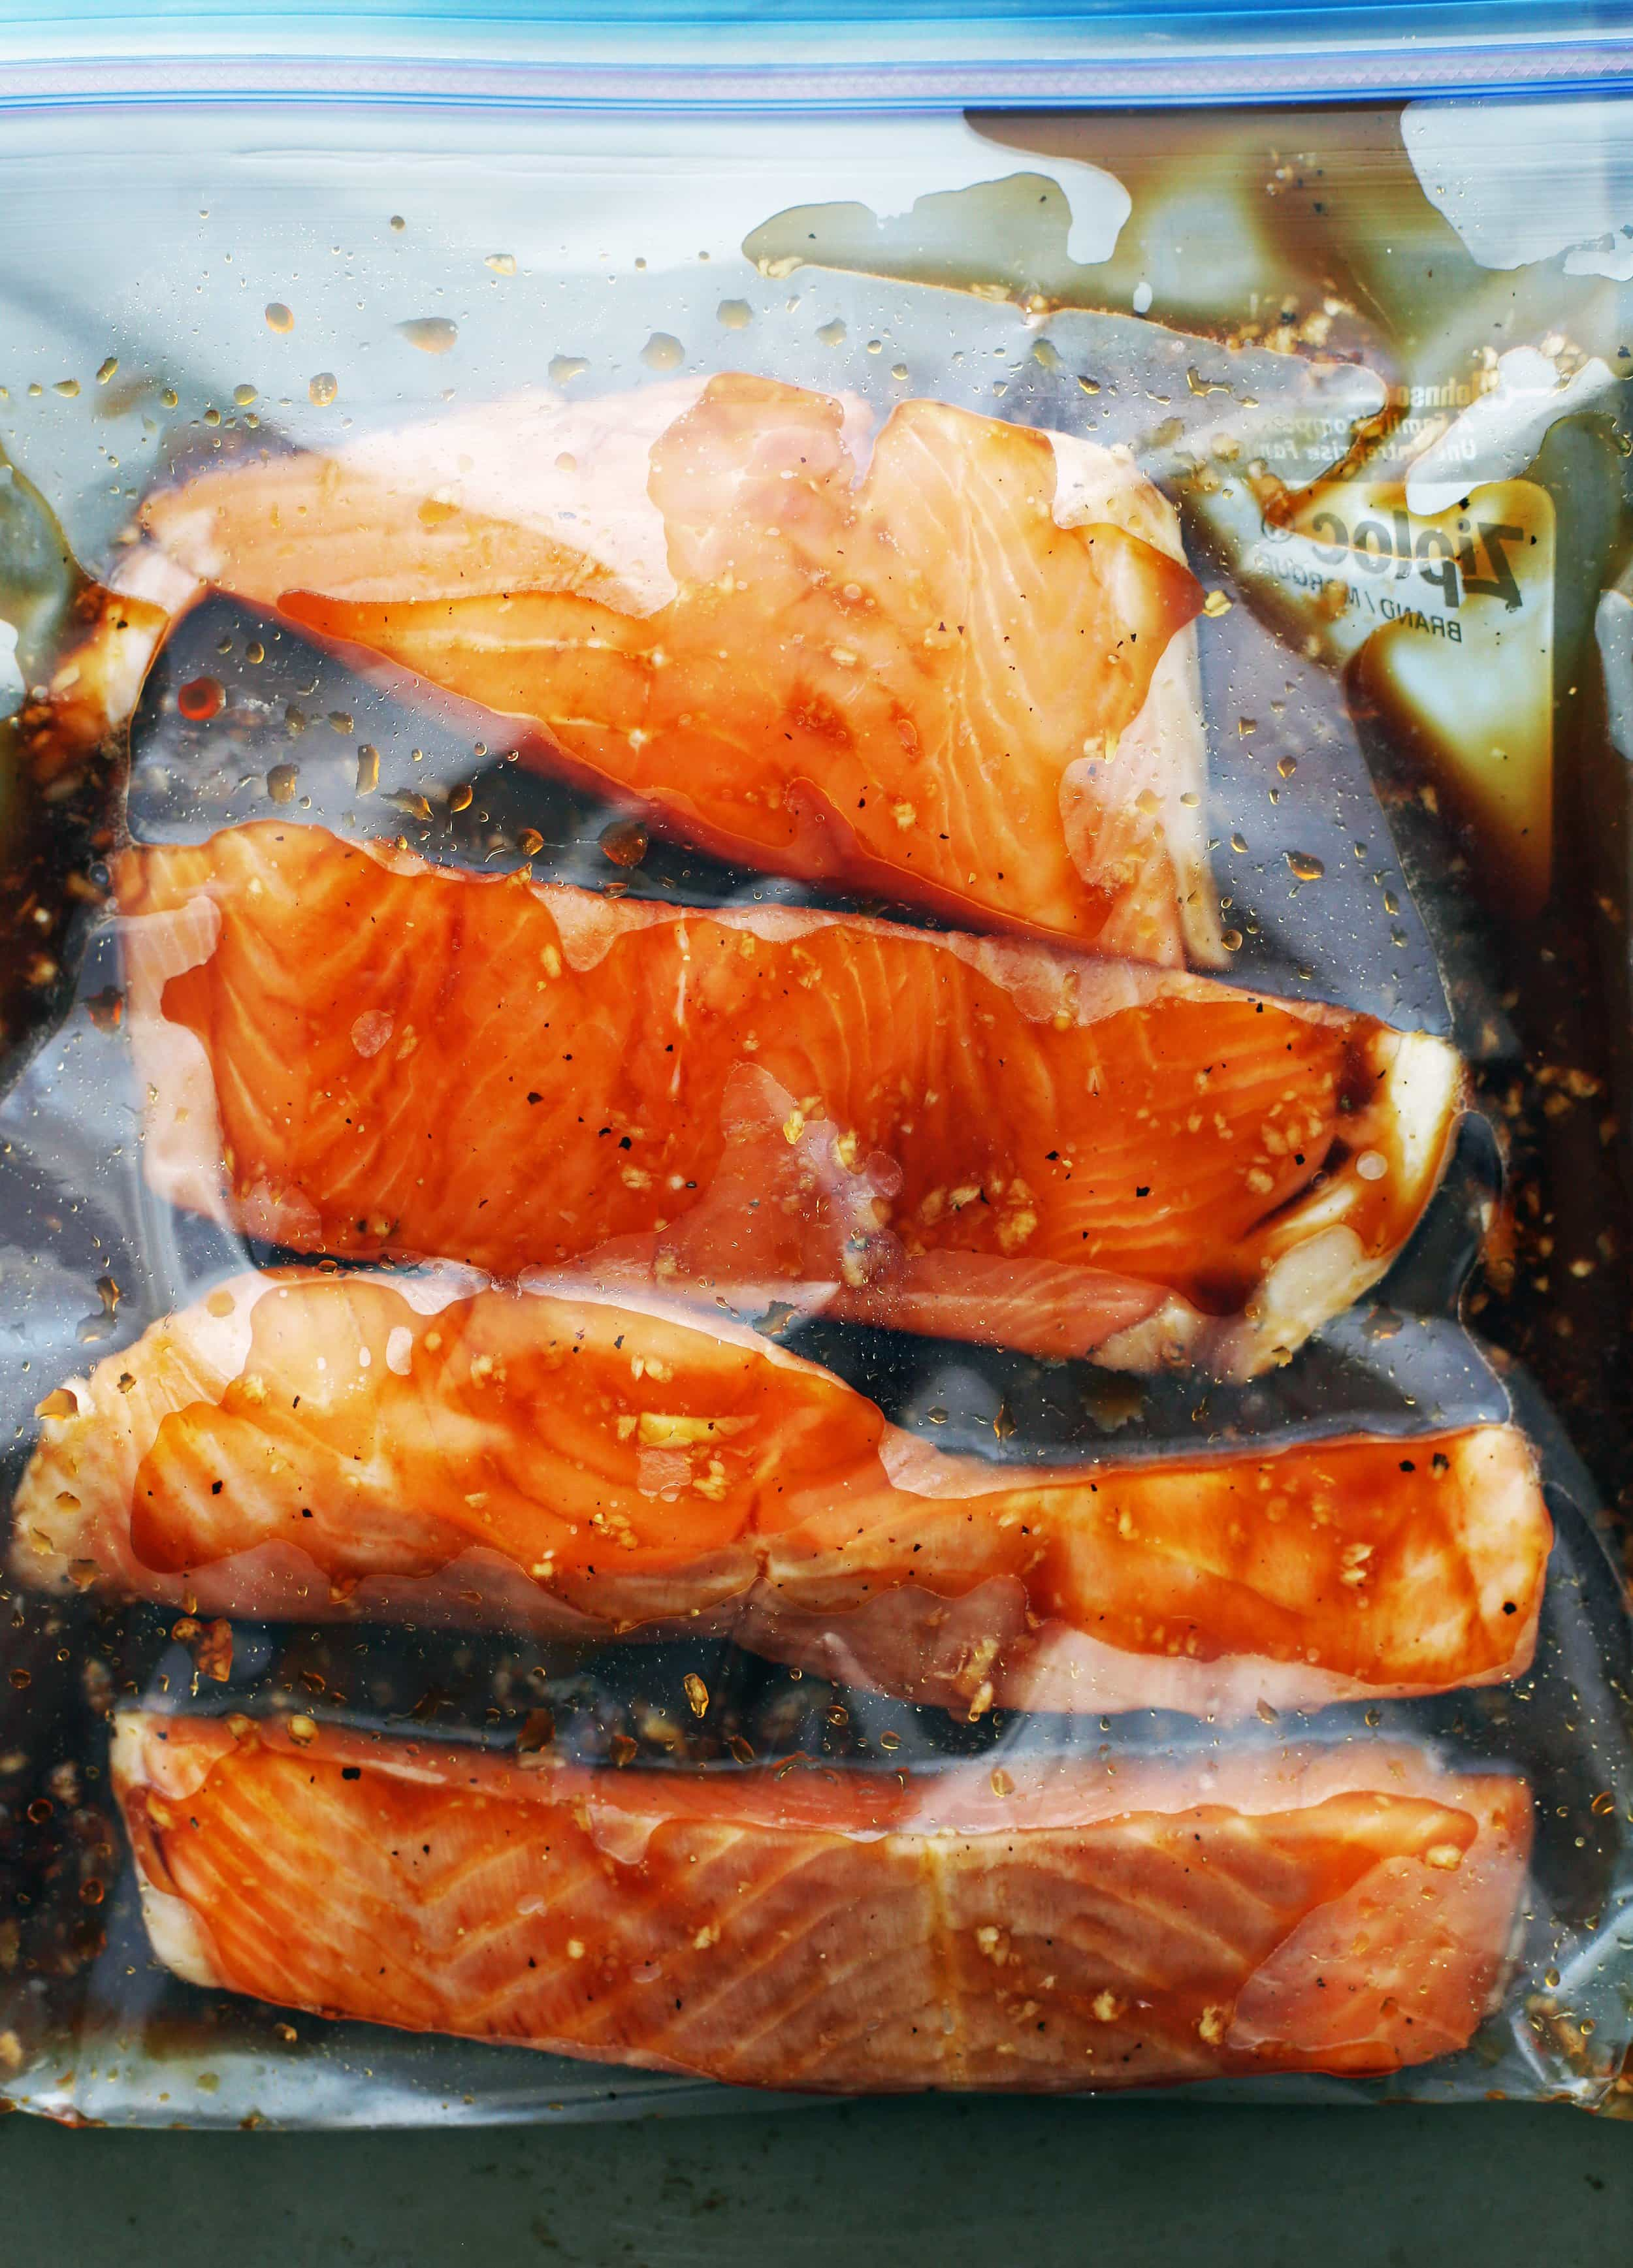 A large resealable plastic bag containing four salmon fillets and soy-maple marinade.